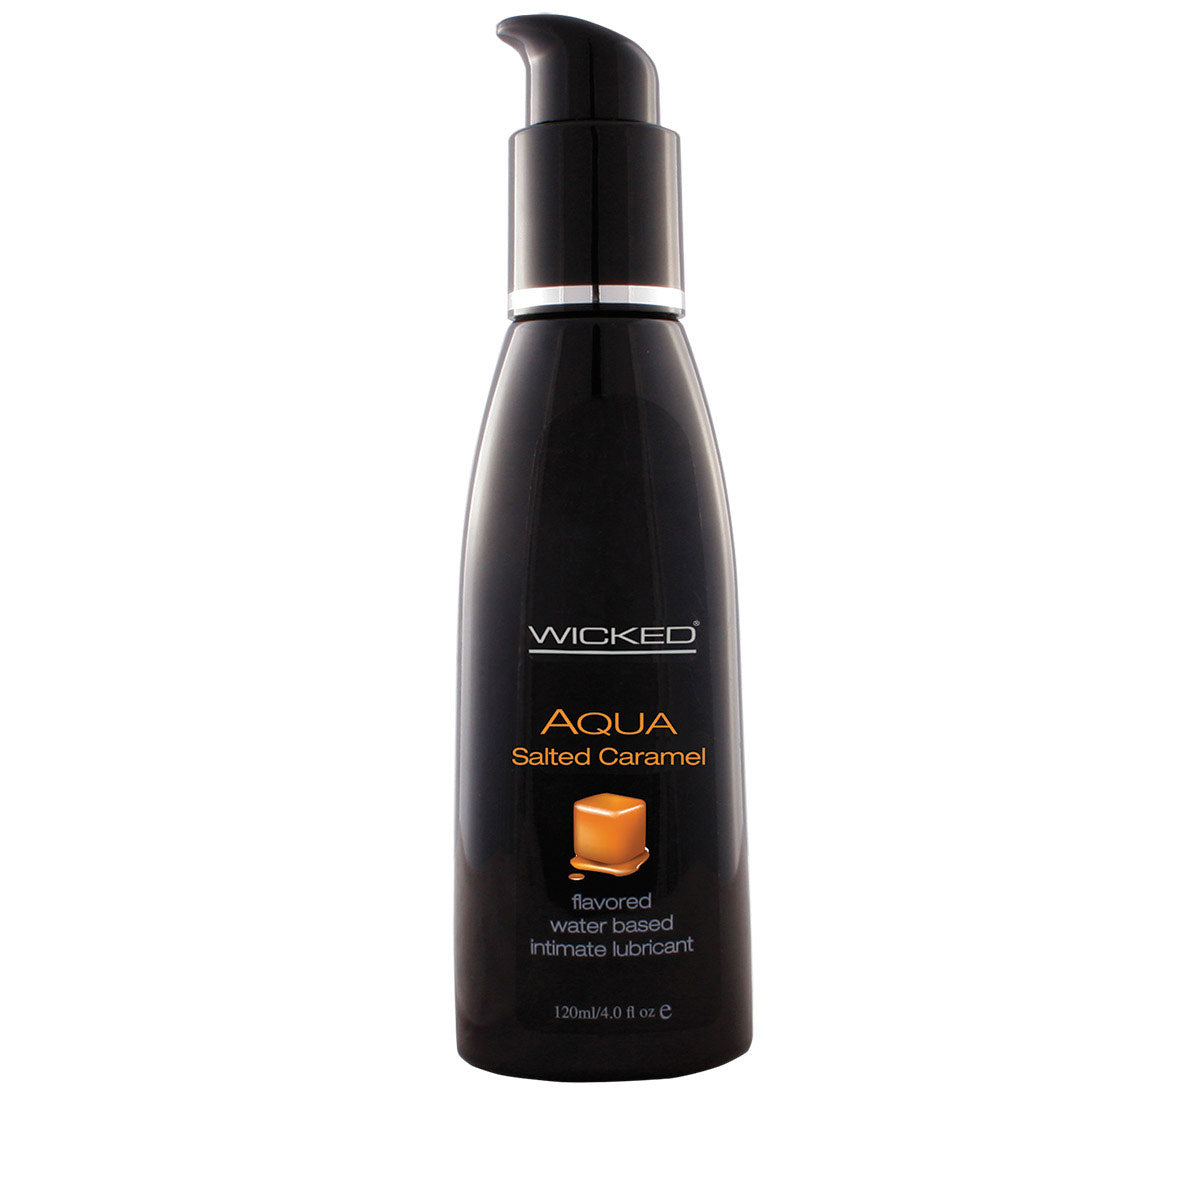 Wicked Sensual Care Aqua 4oz Salted Caramel